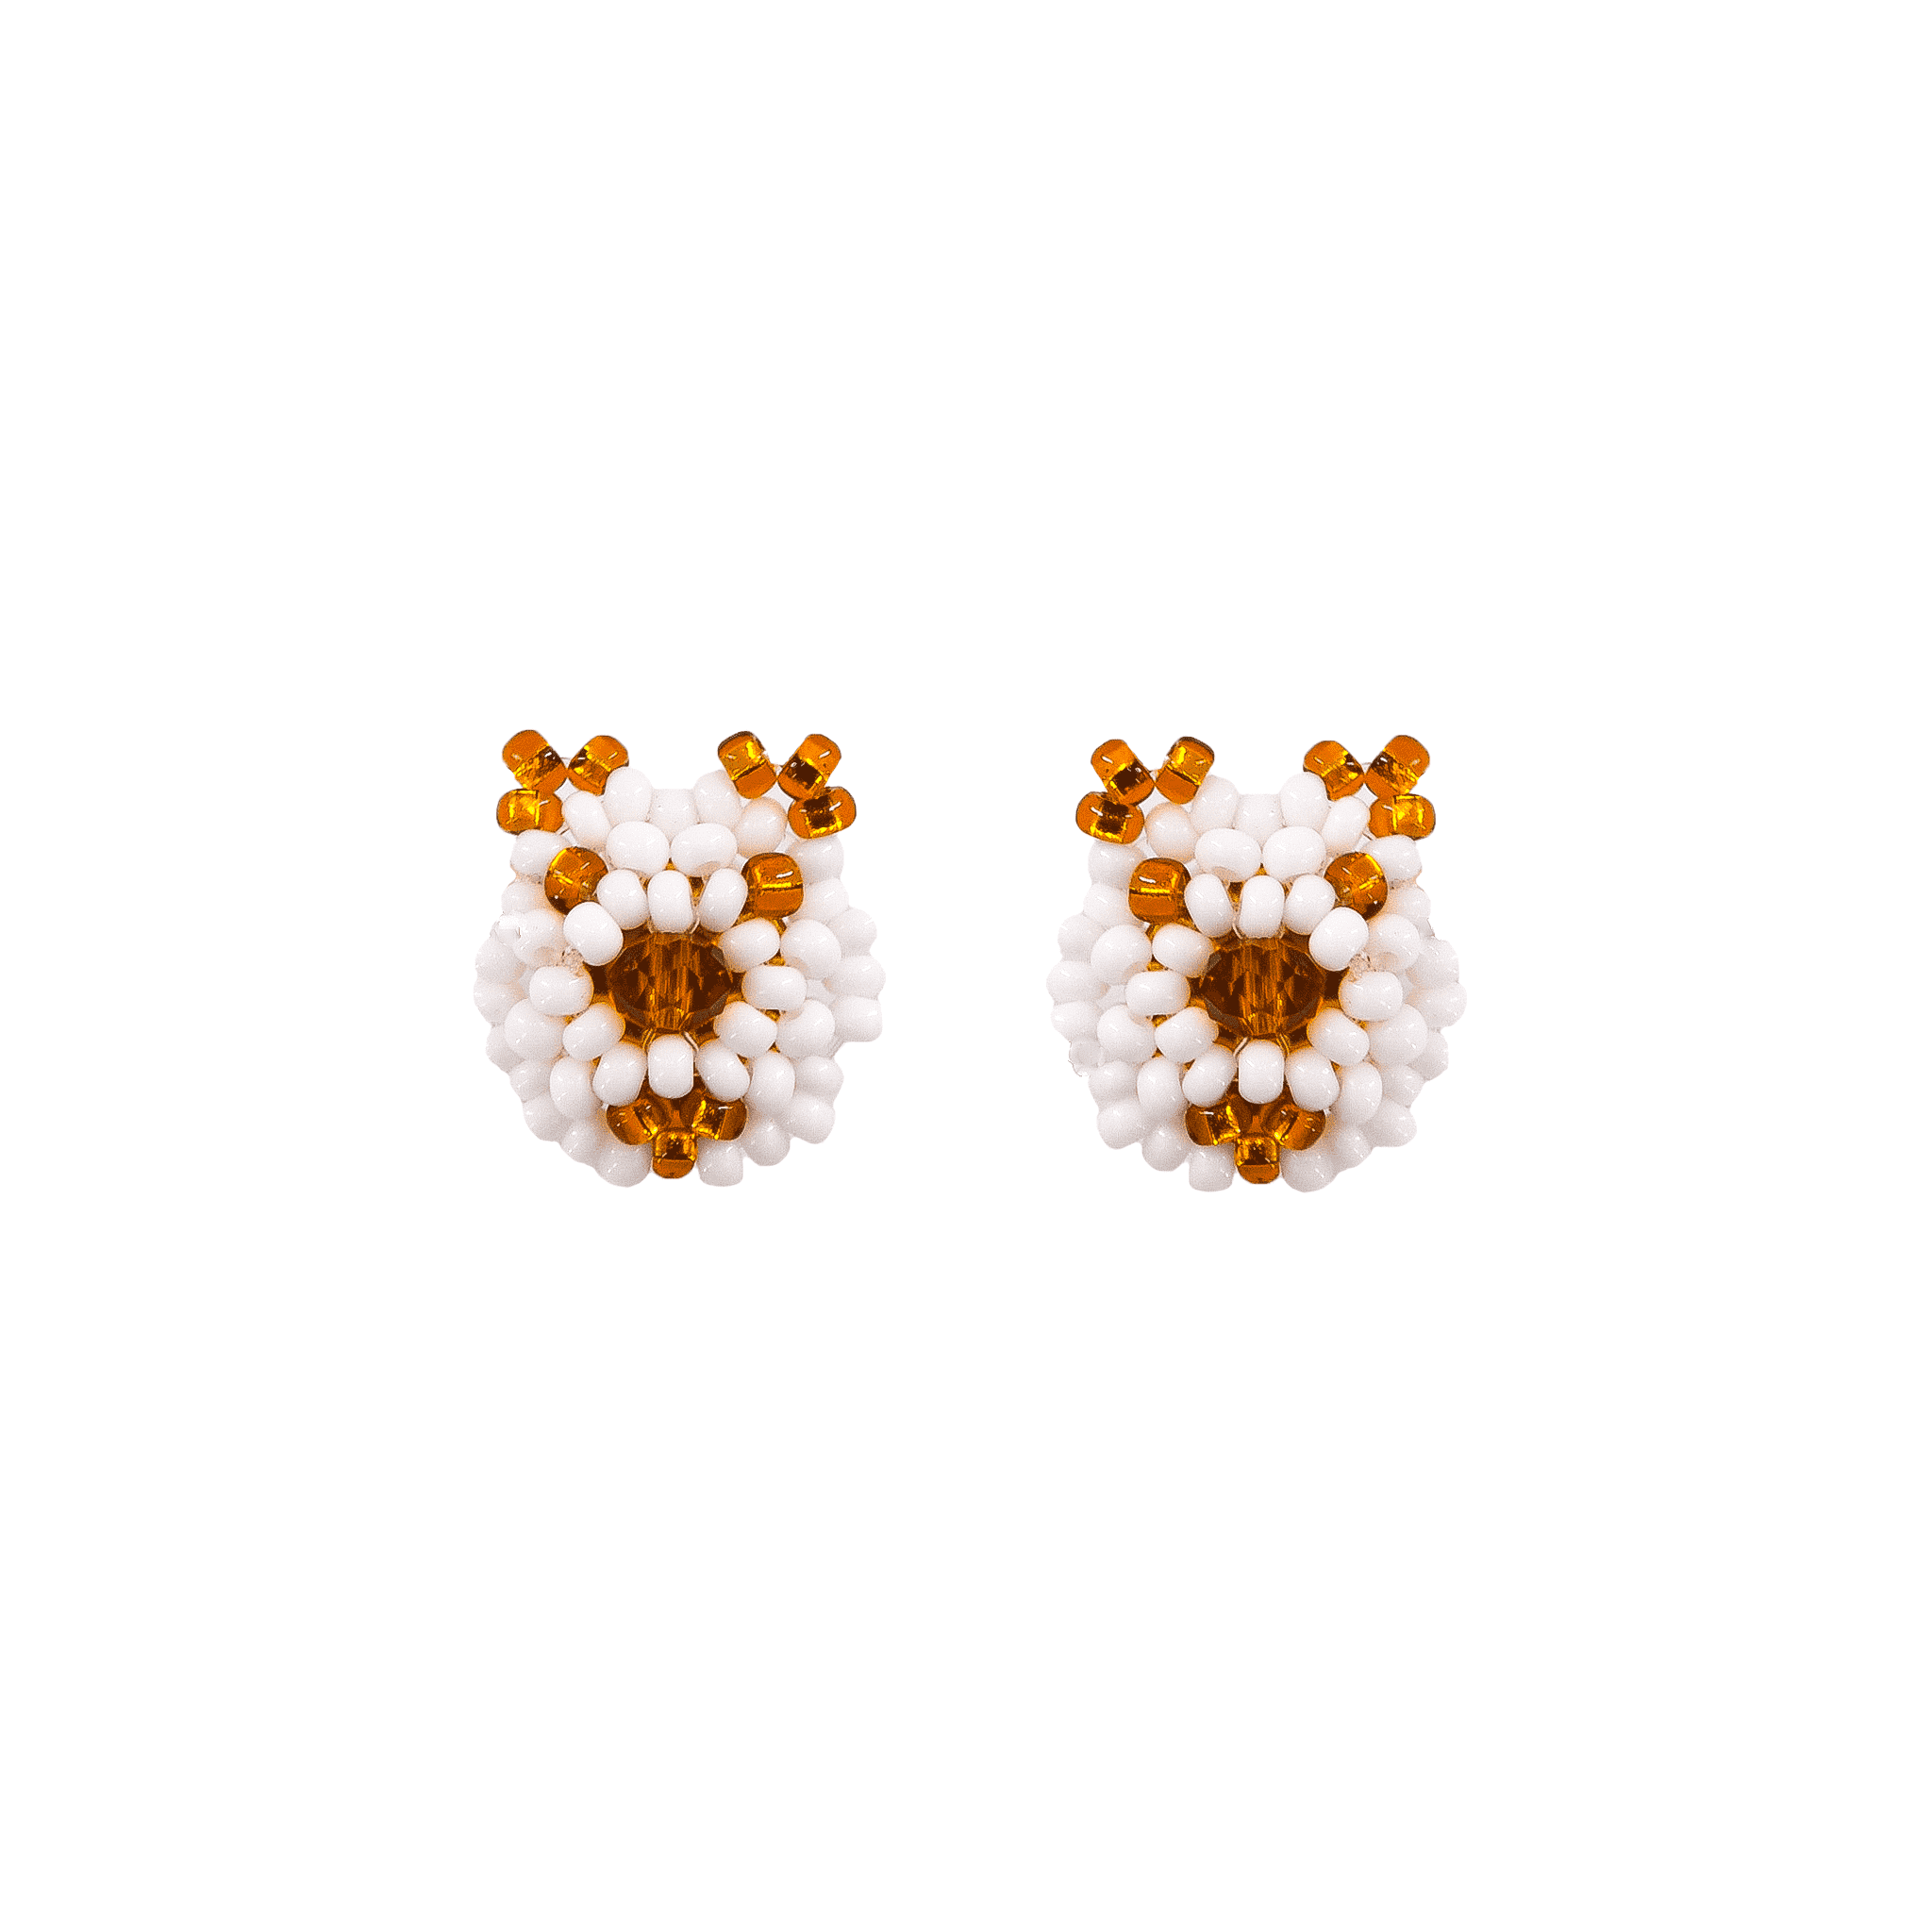 Click to shop all - Puppy Dog Earrings